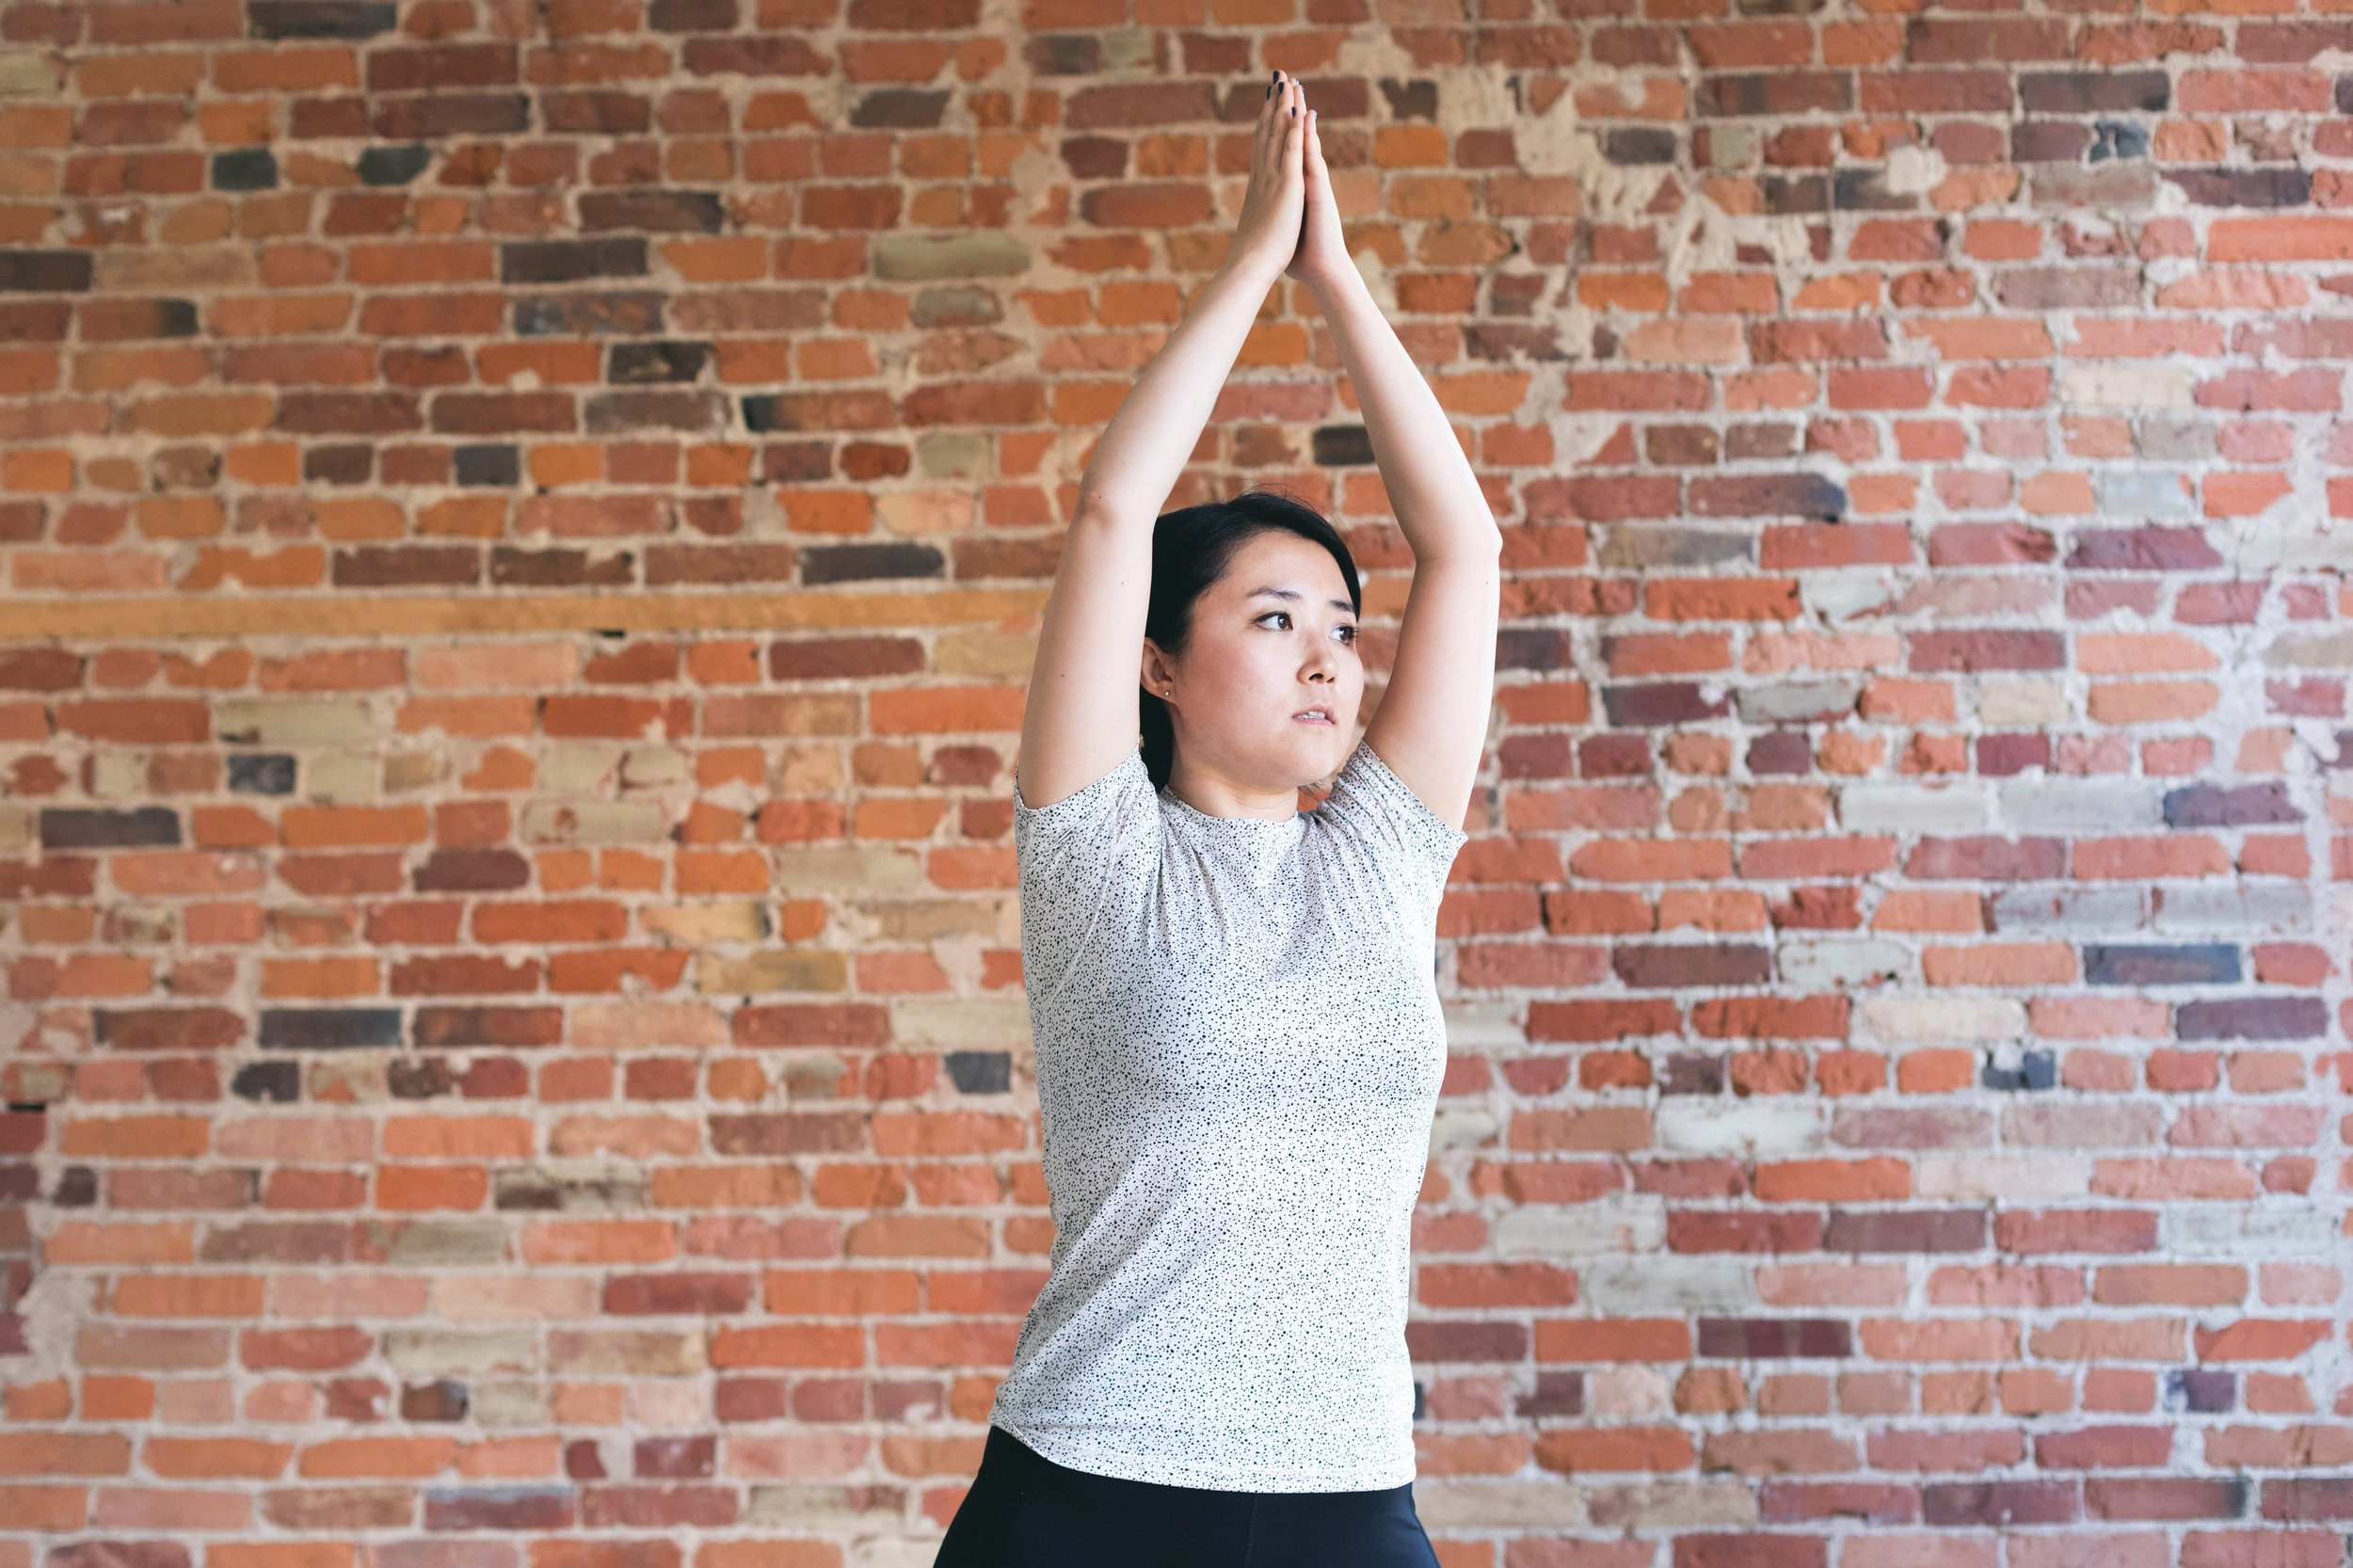 young-woman-against-exposed-brick-doing-yoga.jpg